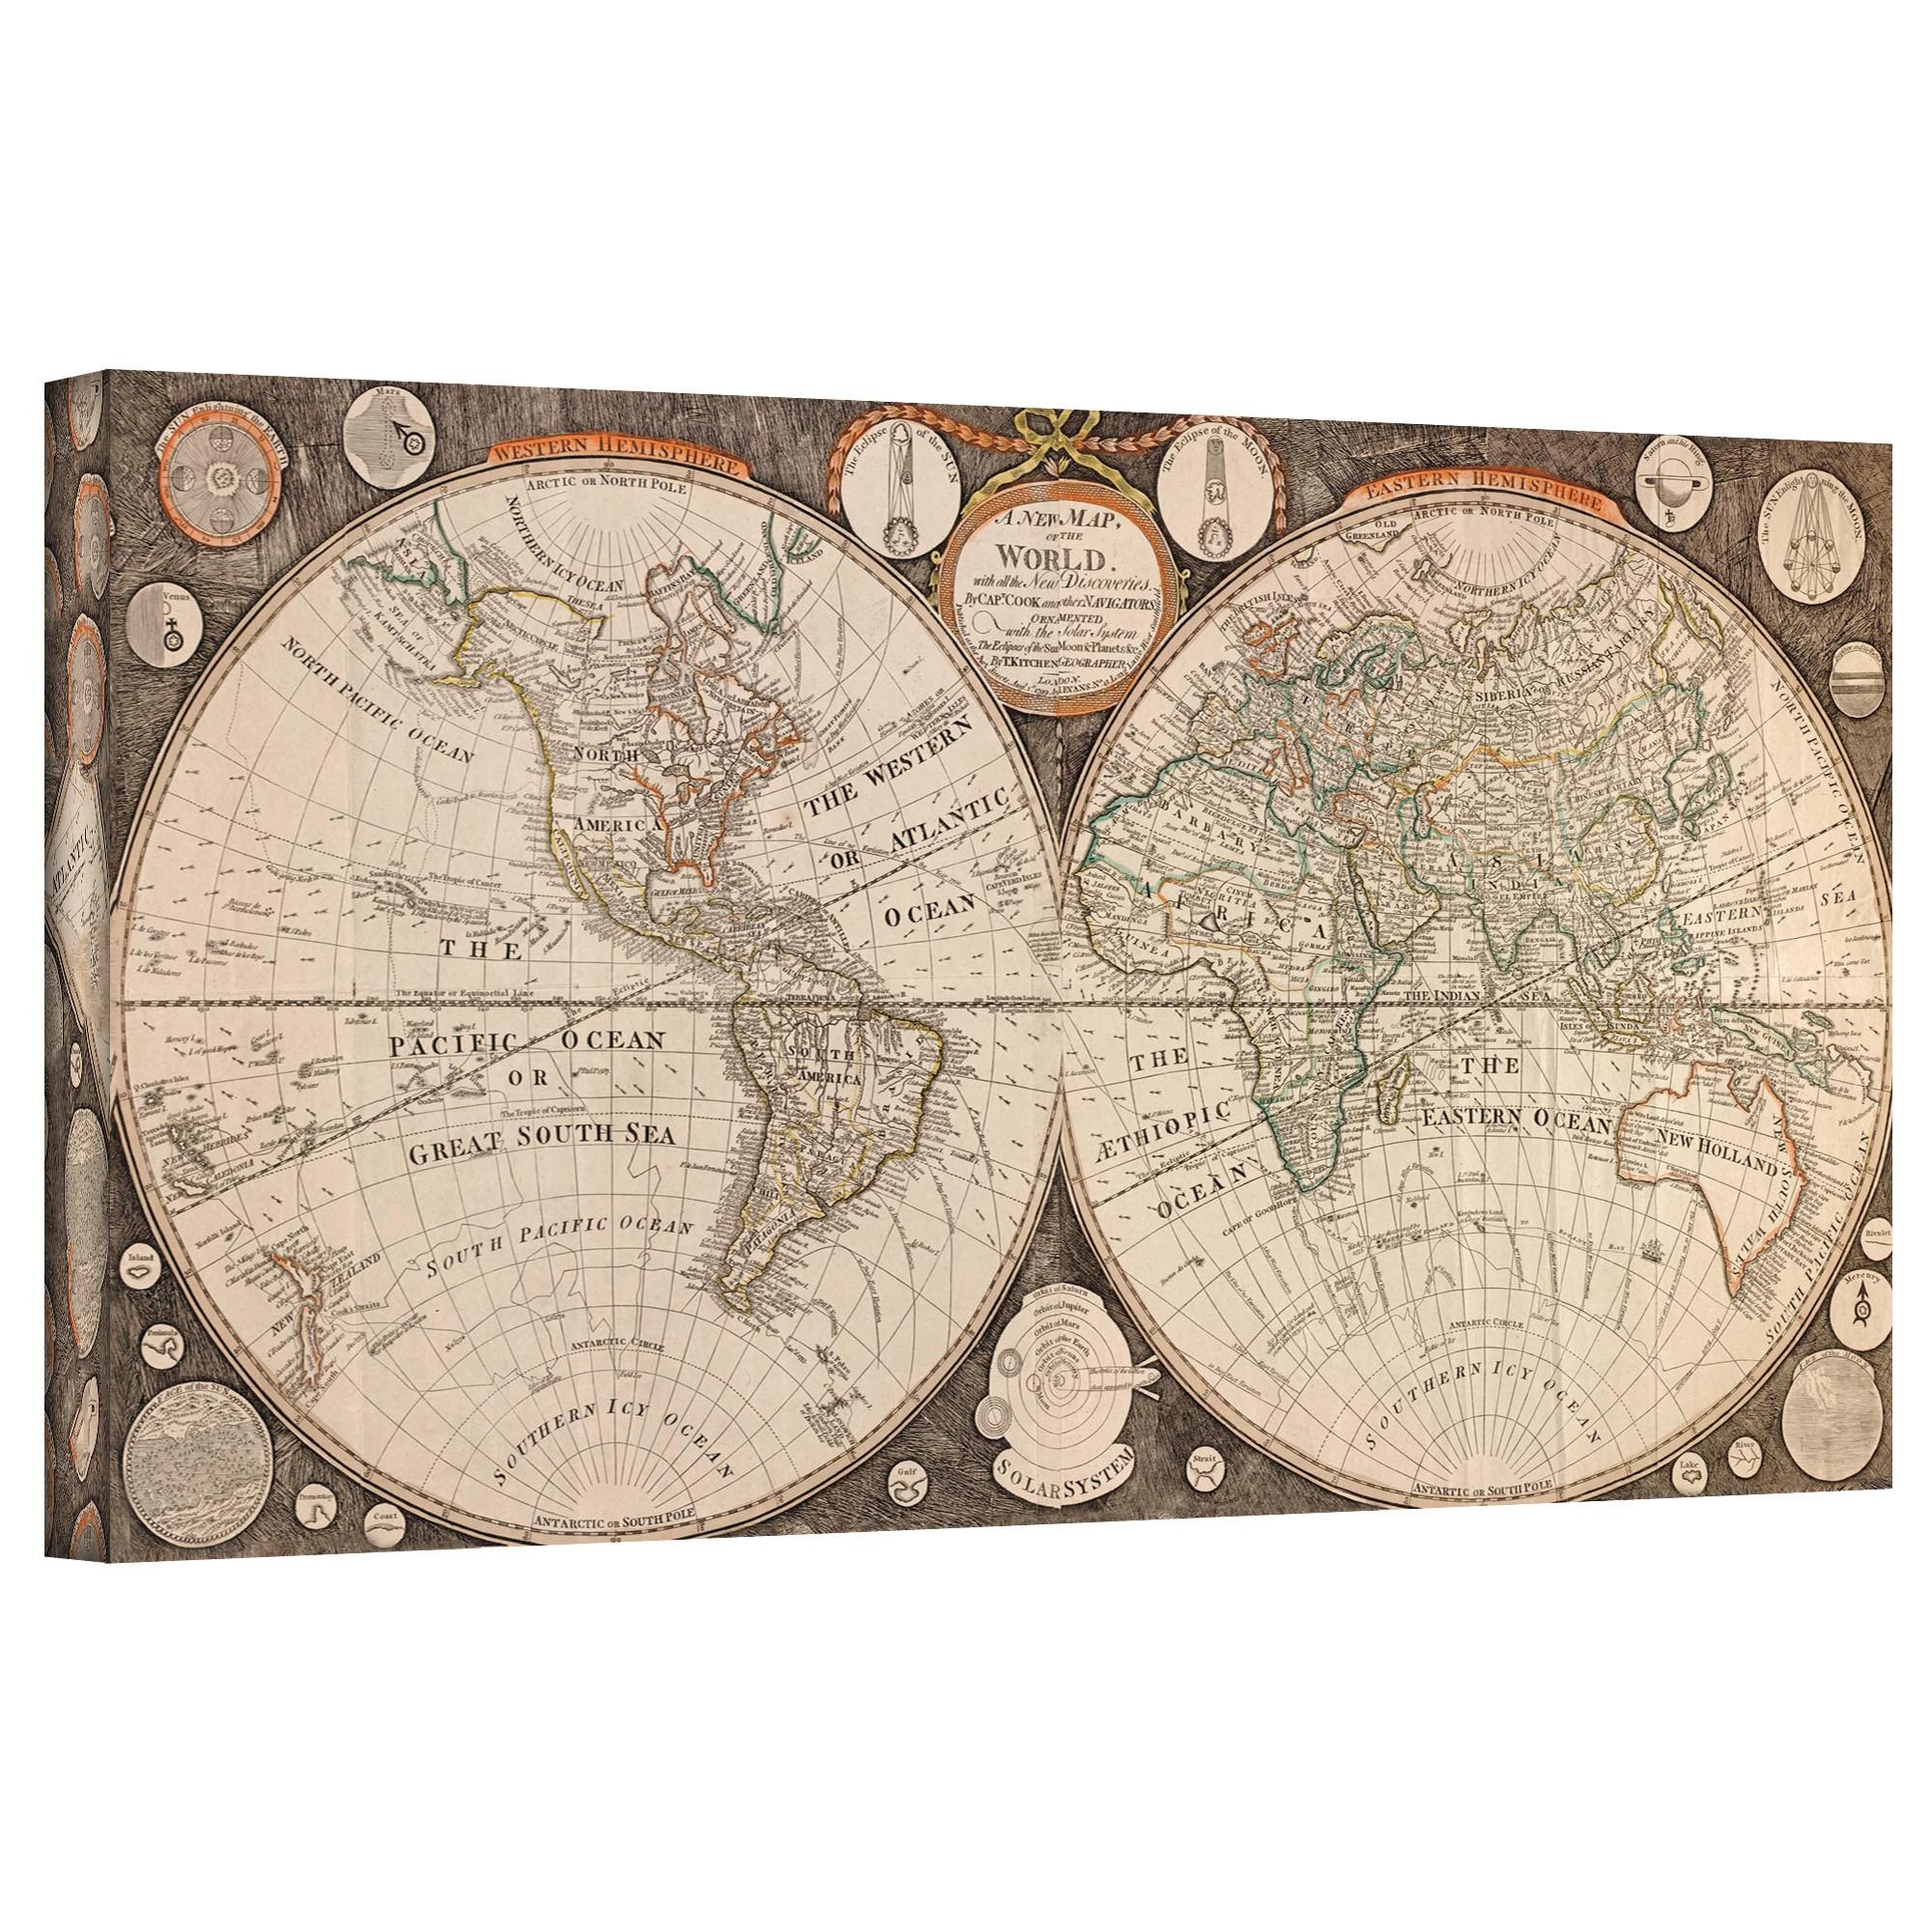 Wall Art Designs: Wonderful Home Decor Vintage Maps Wall Art With Old World Map Wall Art (View 10 of 20)